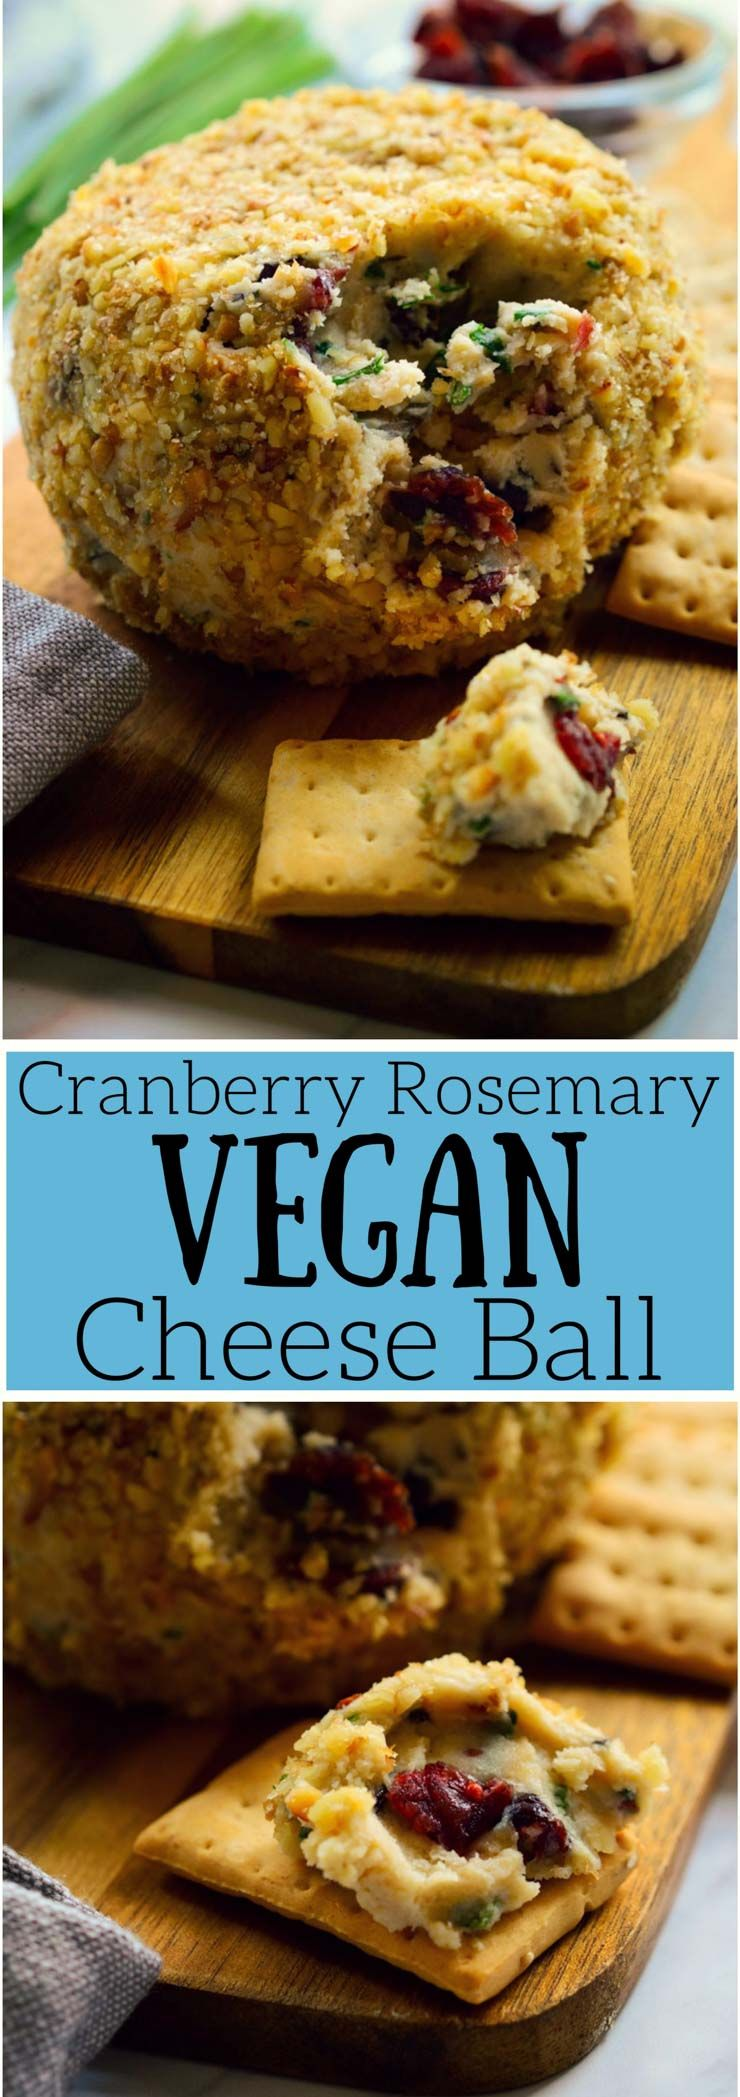 This Cranberry Rosemary Vegan Cheese Ball Is A Great Make Ahead Appetizer For Festive Occasions Or Any Old Day O Vegan Dishes Vegan Cheese Vegan Cheese Recipes